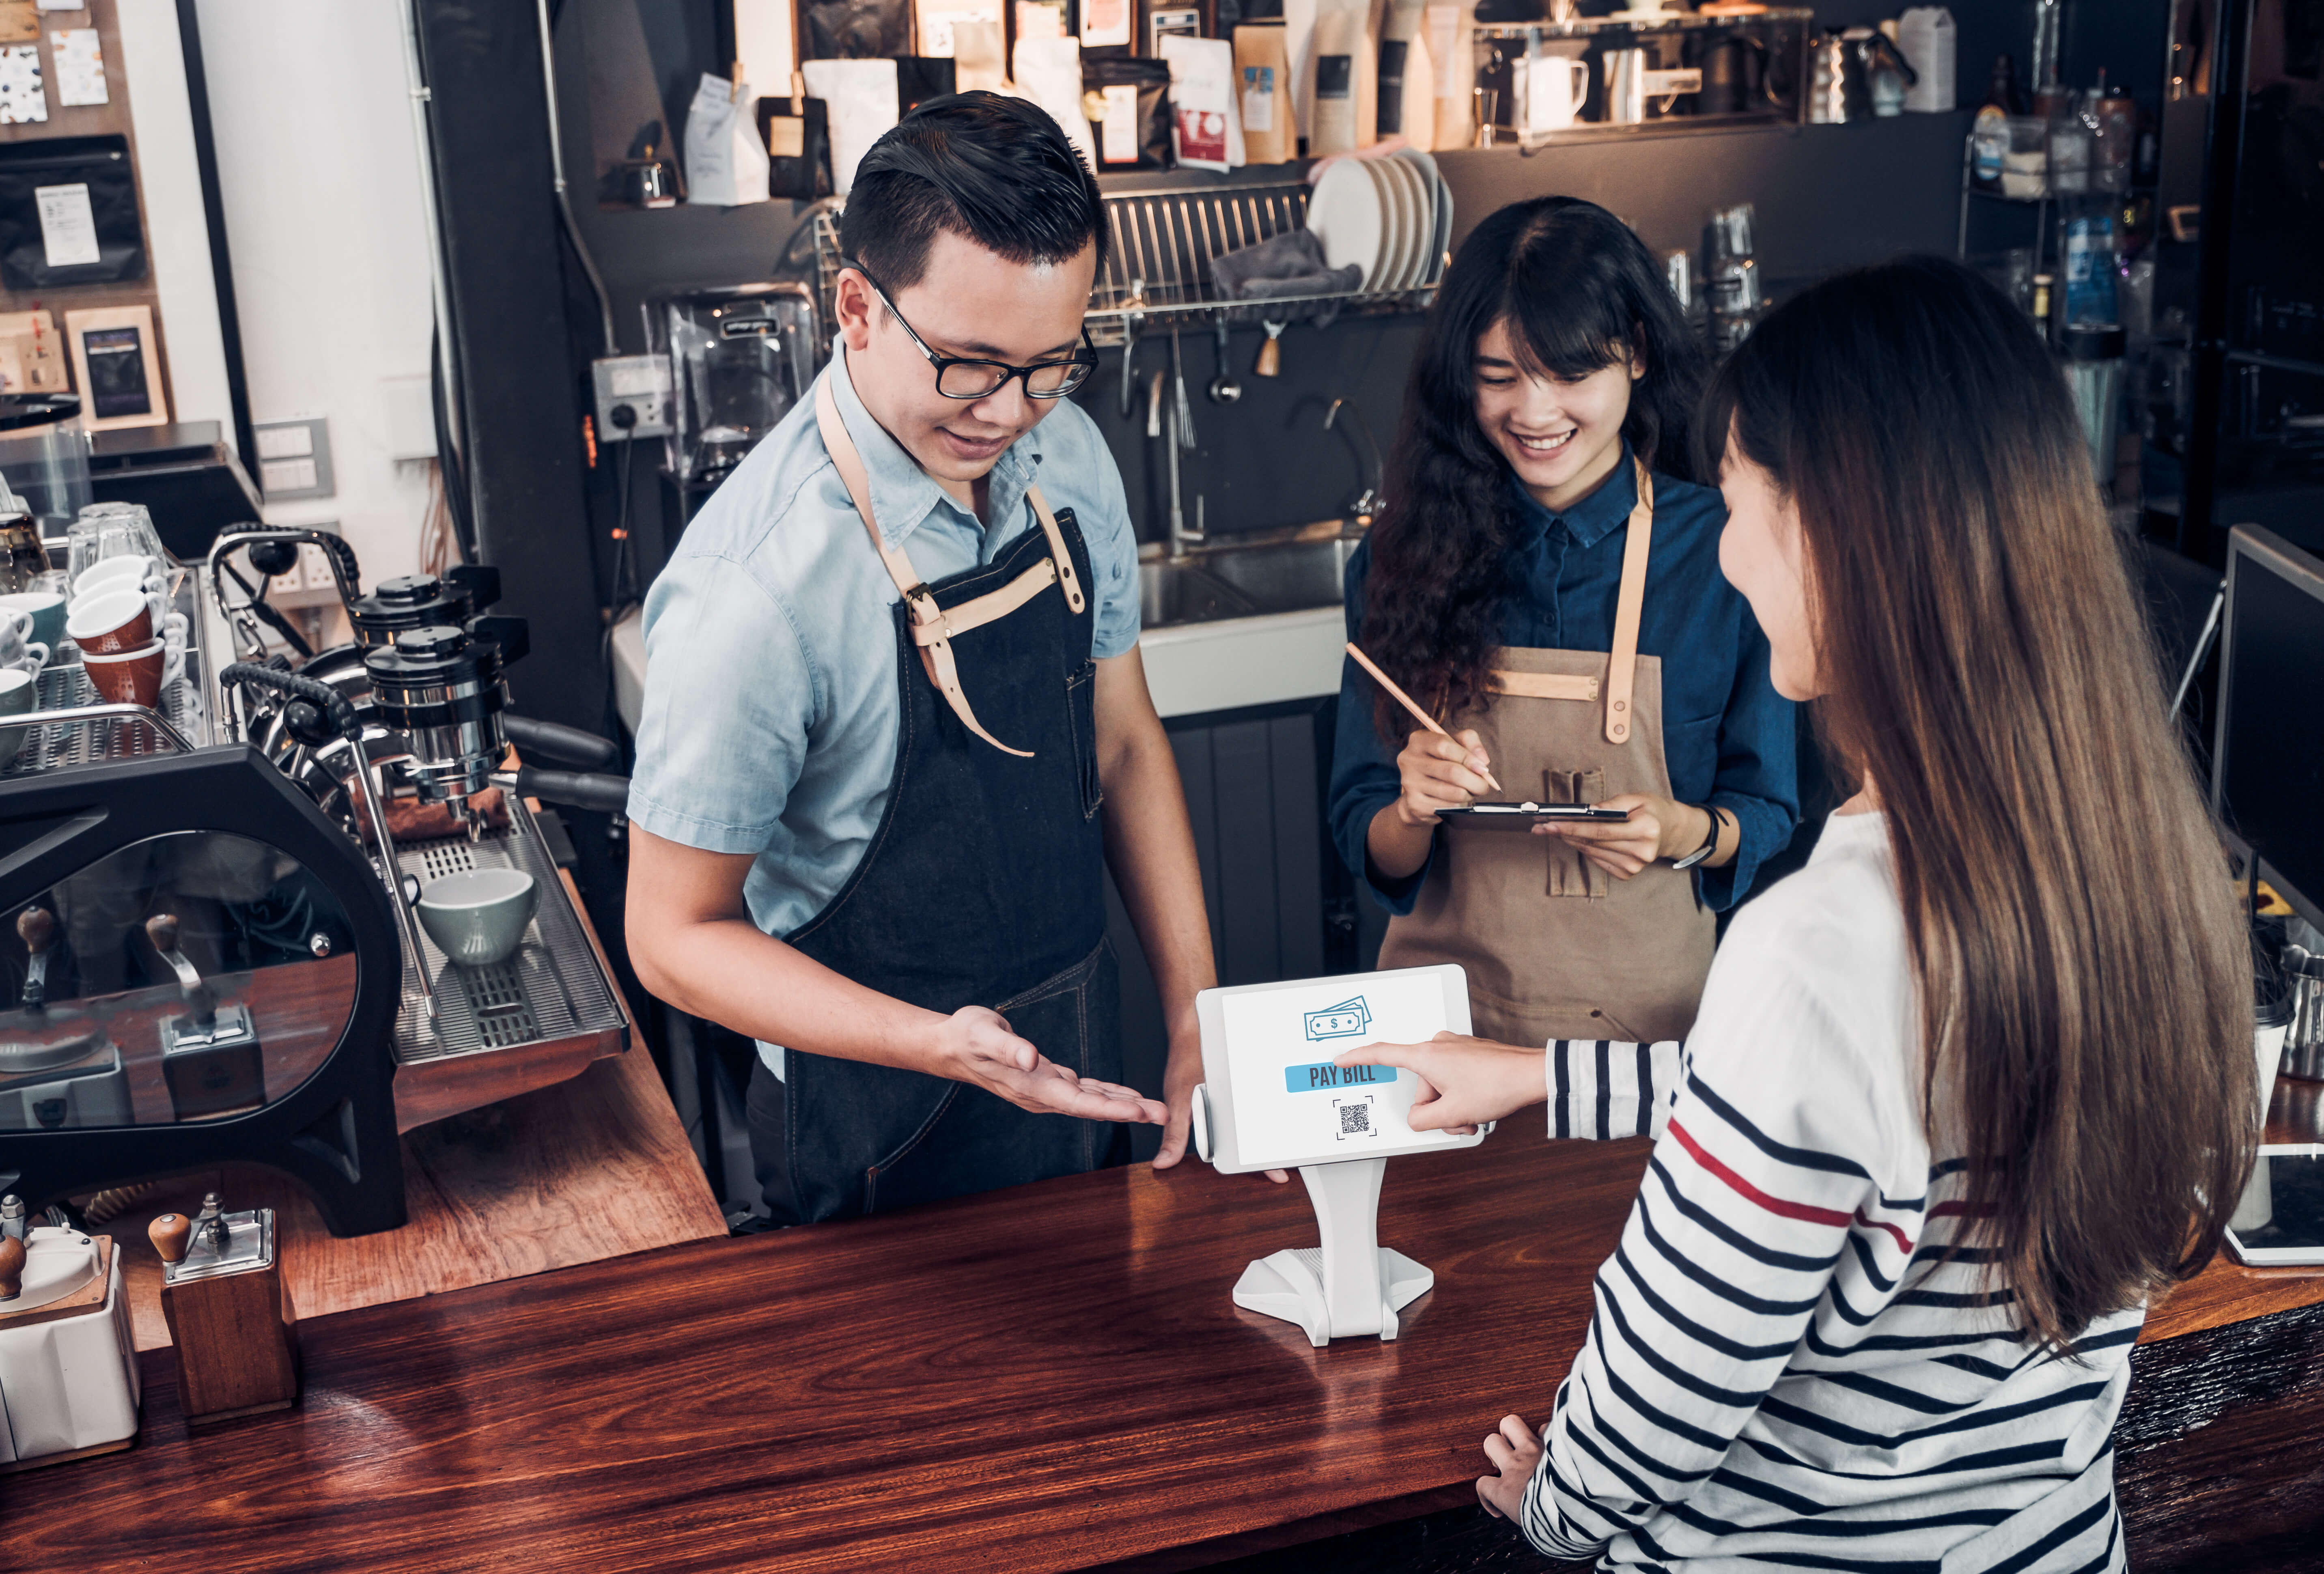 Innovative digital solutions are transforming how restaurant business is run. Source: Shutterstock